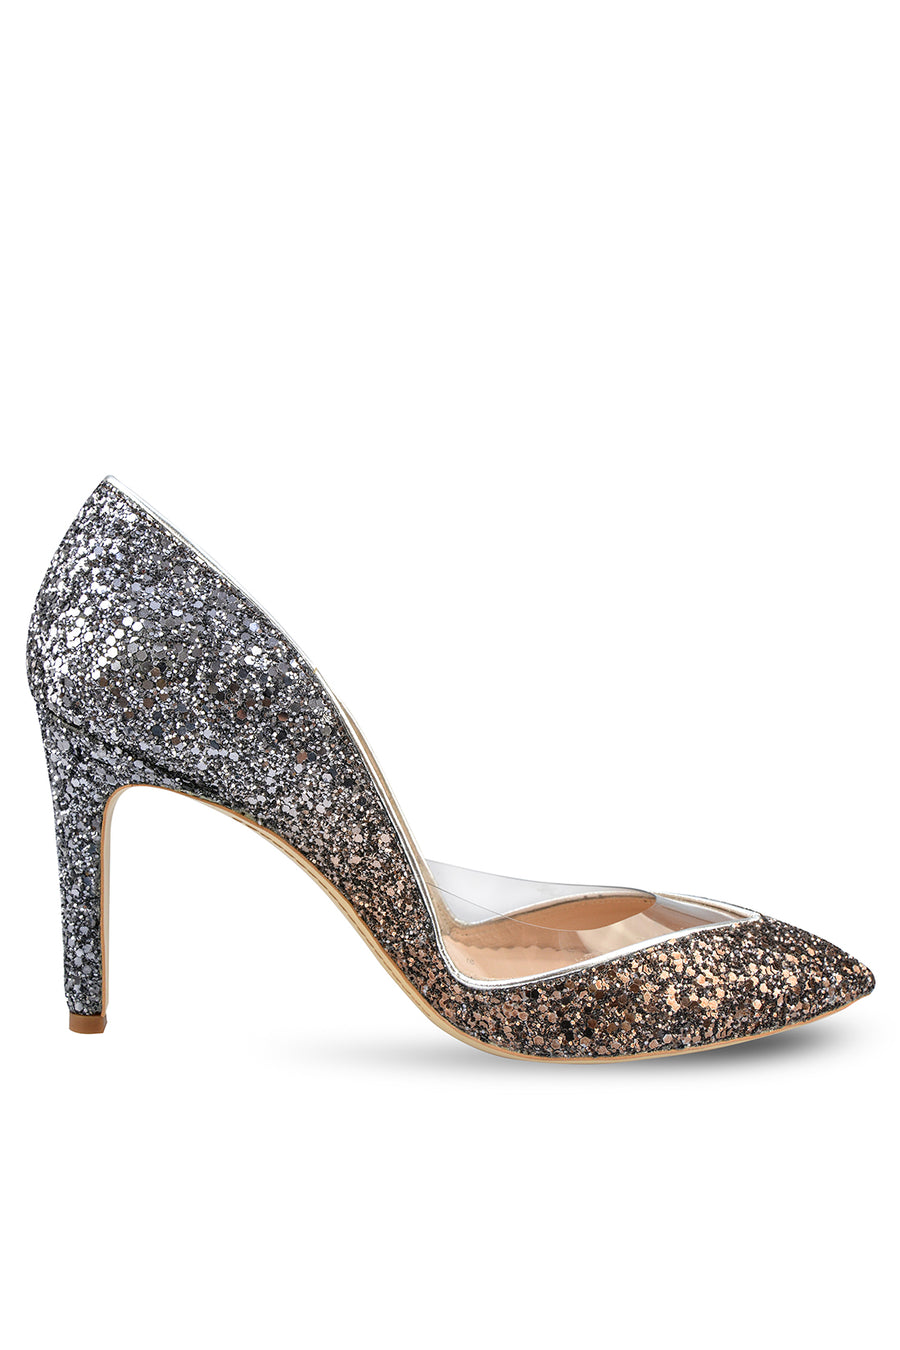 ANDALUSITE GLAM PUMPS